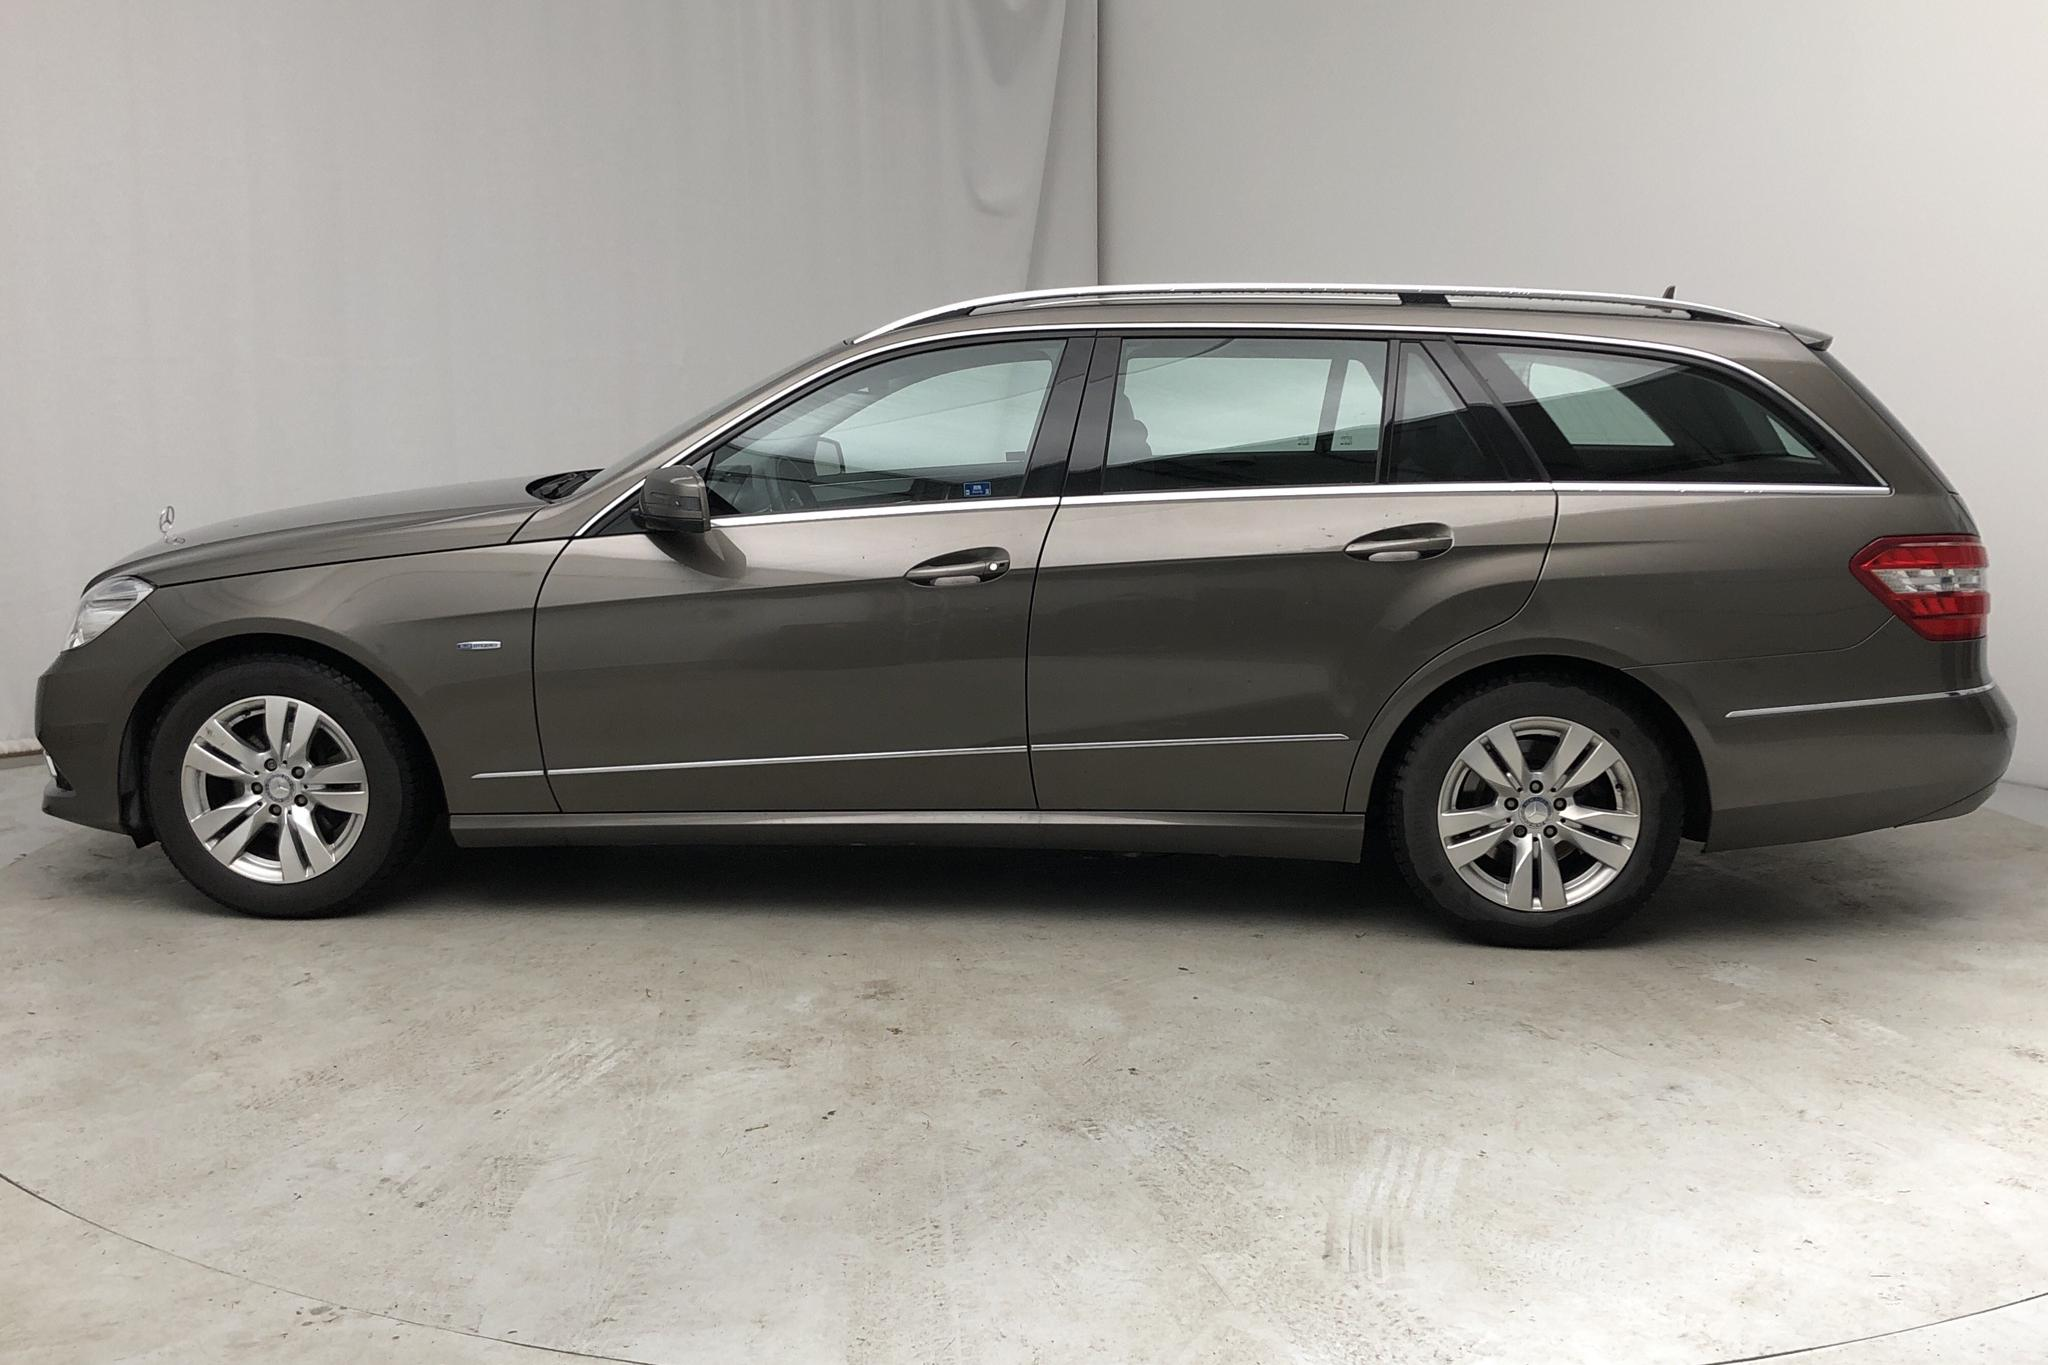 Mercedes E 220 CDI Kombi S212 (170hk) - 42 440 km - Automatic - Dark Grey - 2010